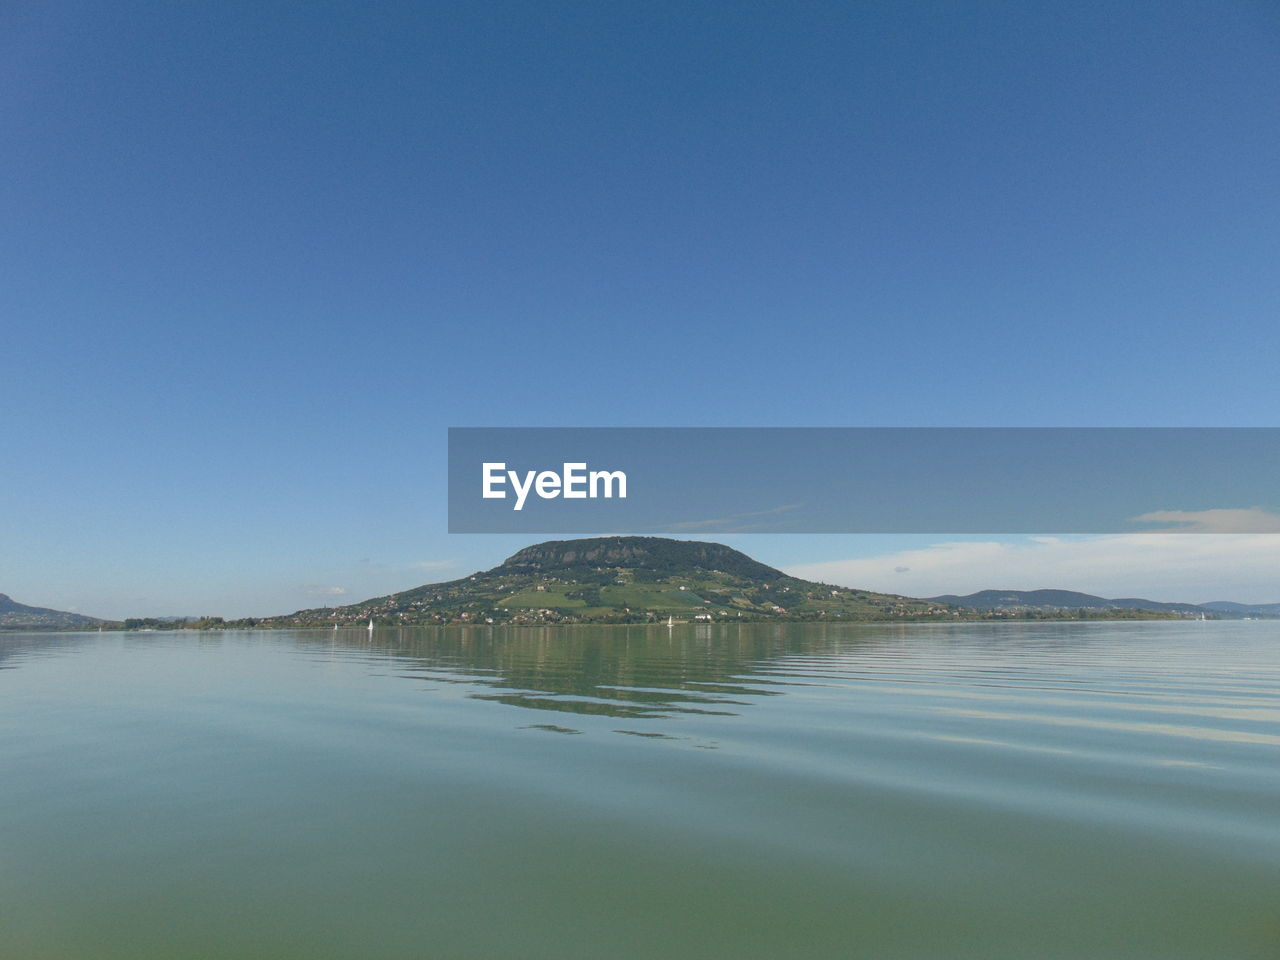 water, sky, tranquil scene, scenics - nature, tranquility, beauty in nature, copy space, waterfront, blue, mountain, nature, no people, idyllic, clear sky, lake, day, non-urban scene, reflection